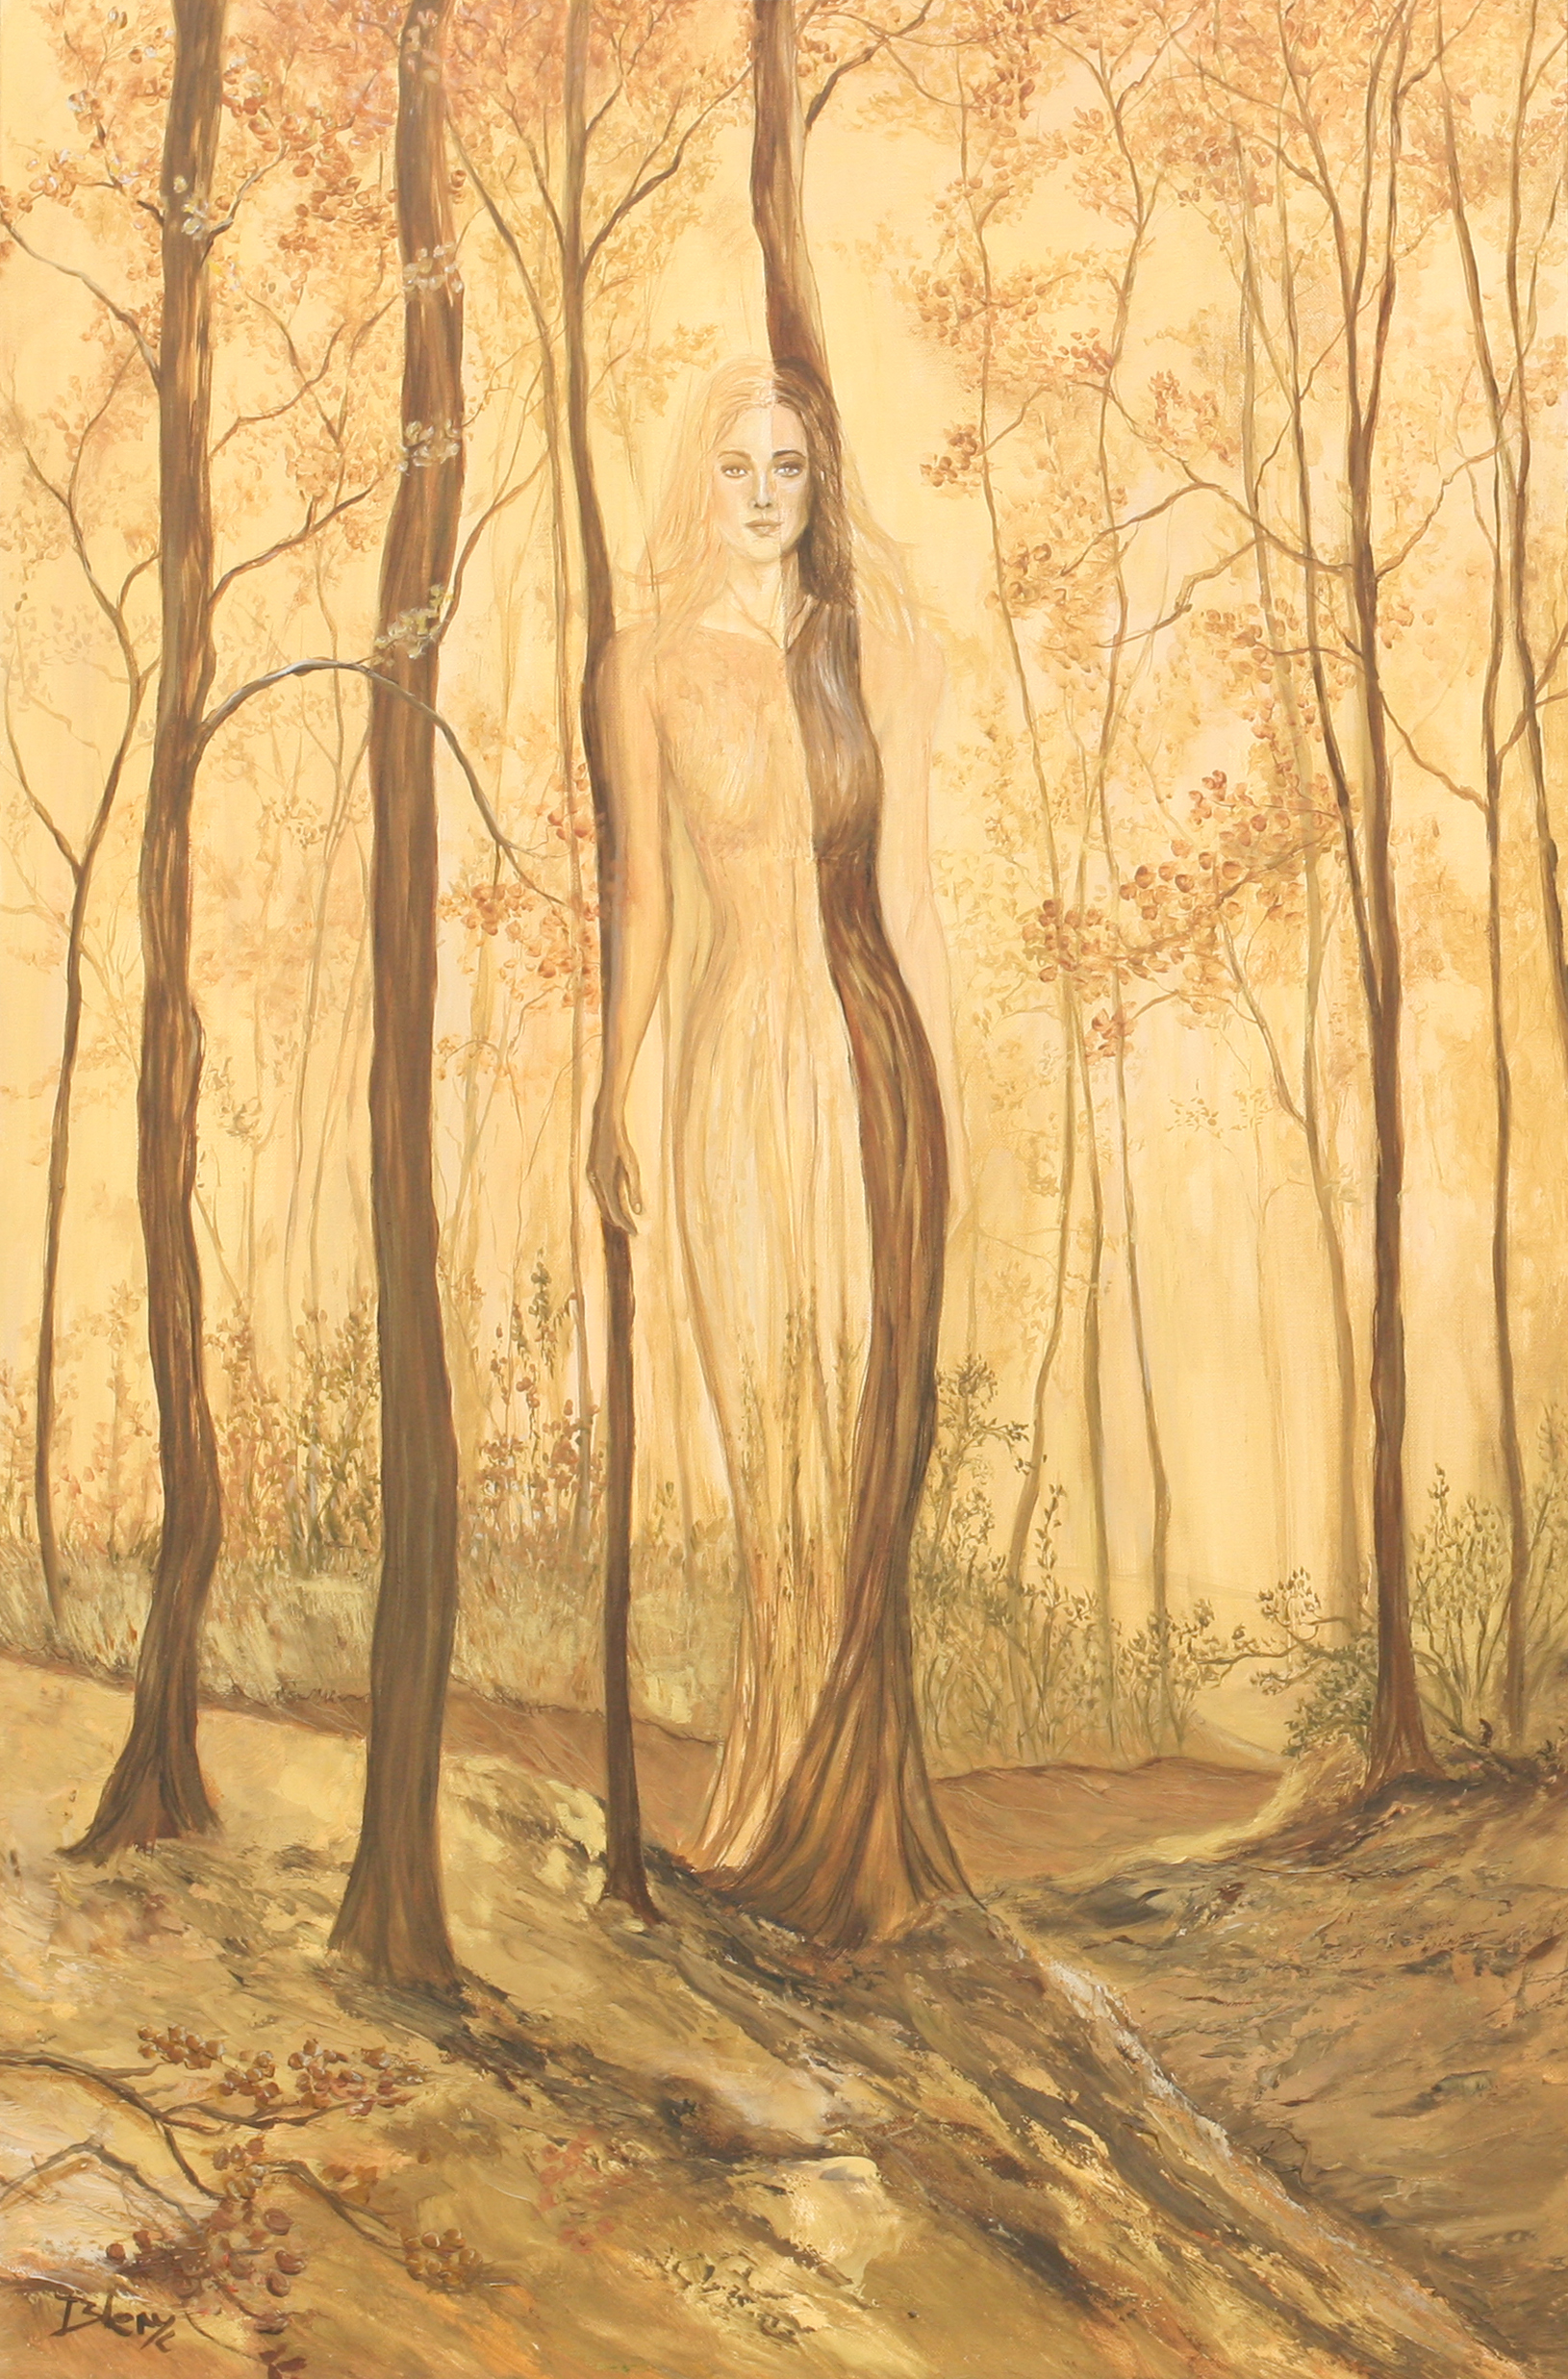 Golden girld - sold